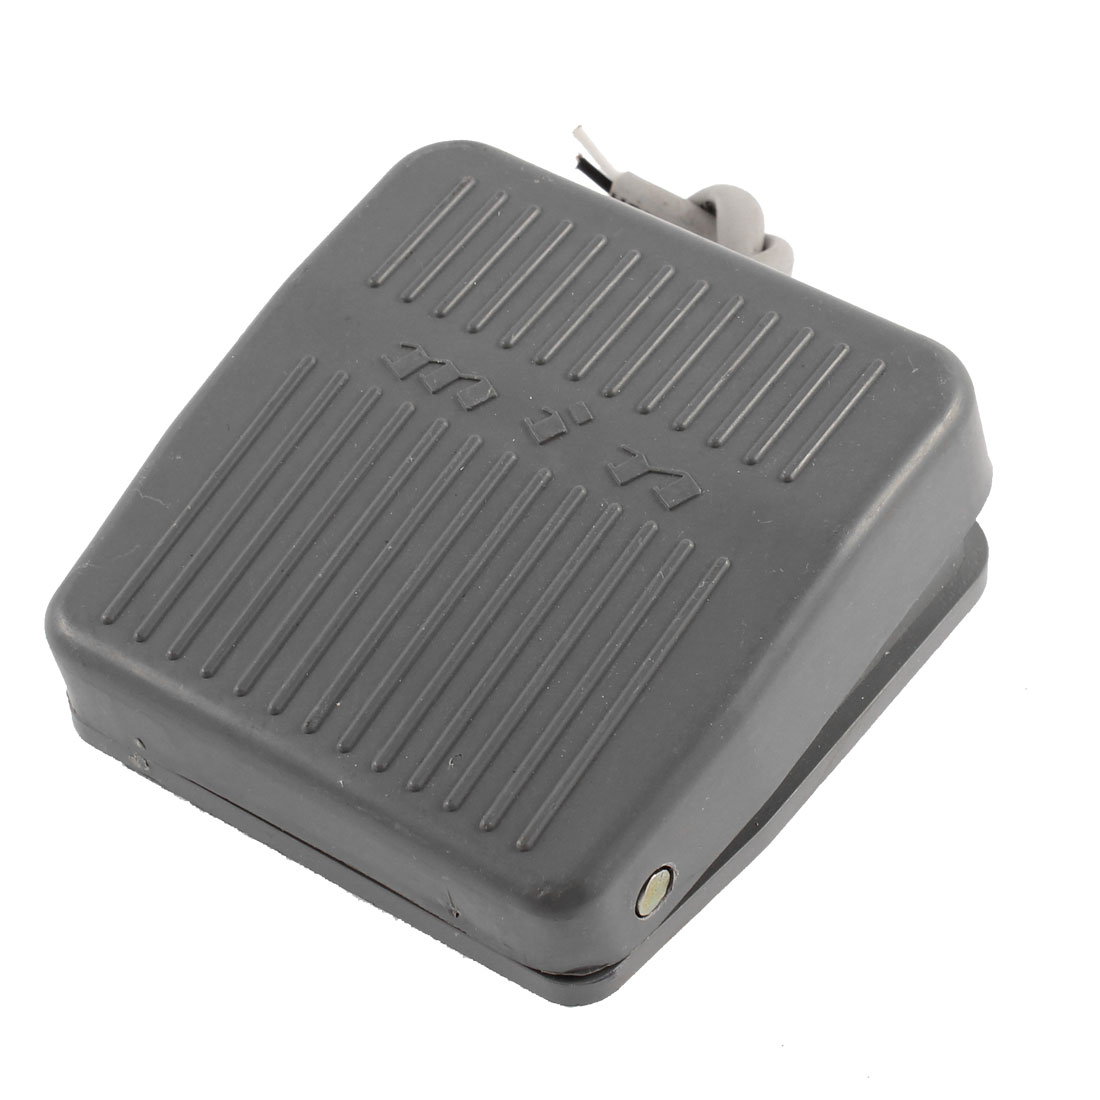 AC 250V 10A SPDT Momentary Action Handsfree Nonslip Pedal Foot Switch